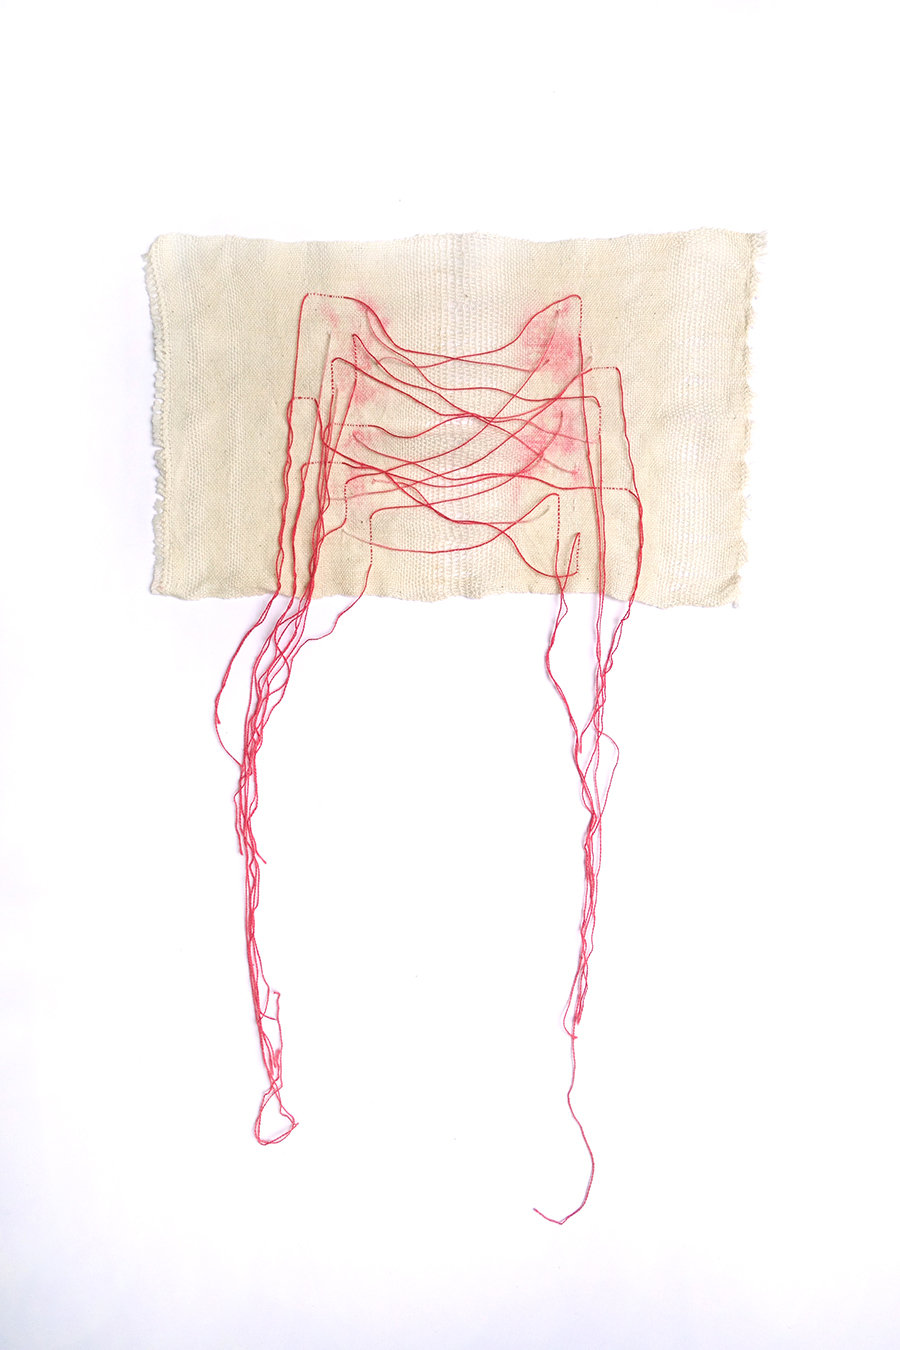 Study for 'Offshoots'   Cotton fibres 2016